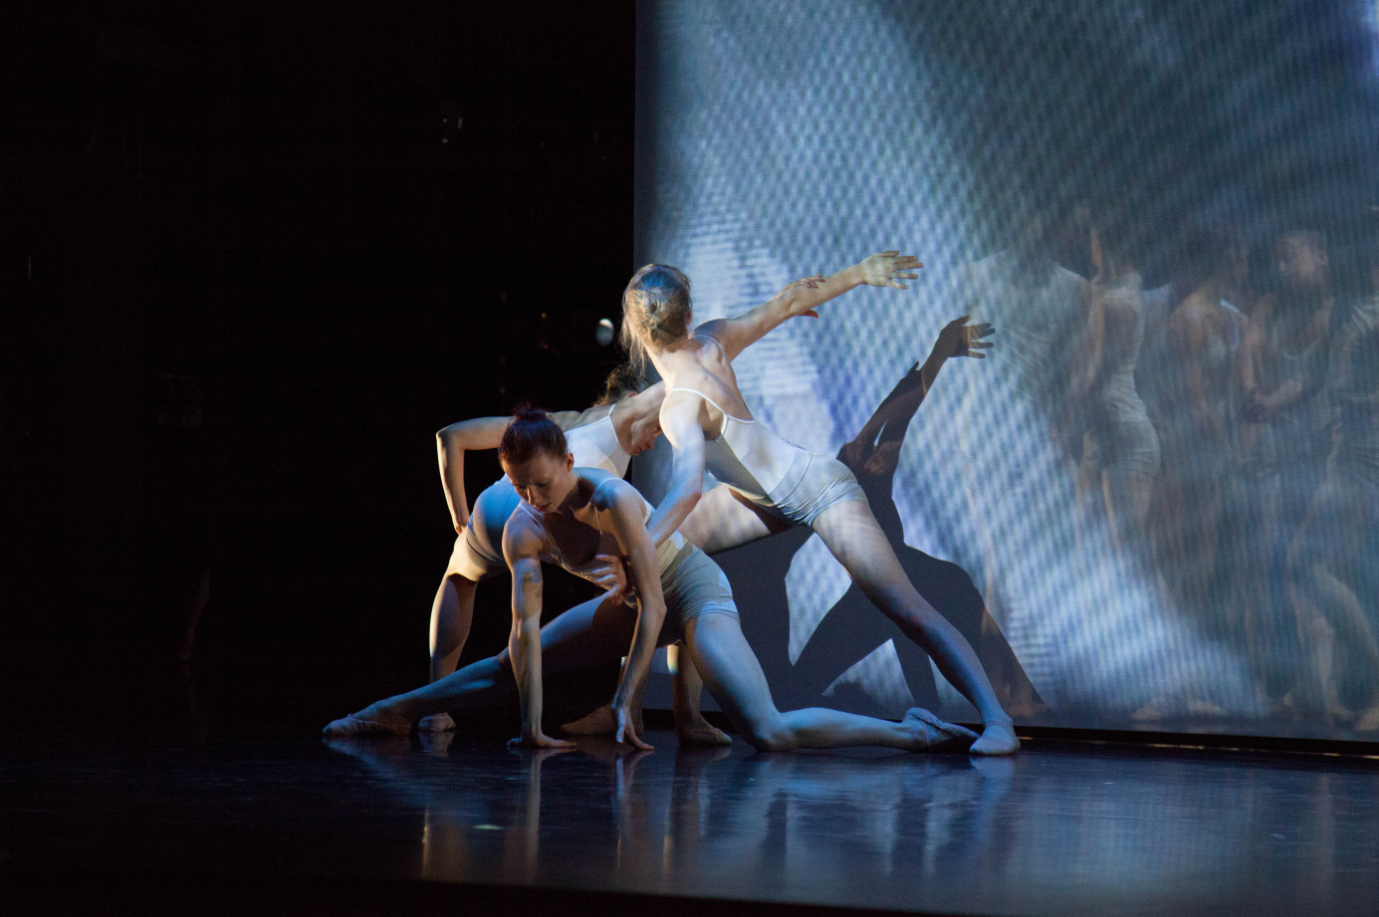 A blended cast of international students in Toronto interact with dancers in Amsterdam via live streaming during the performance of  Stream , choreographed by Shaun Amyot and Michael Schumacher.